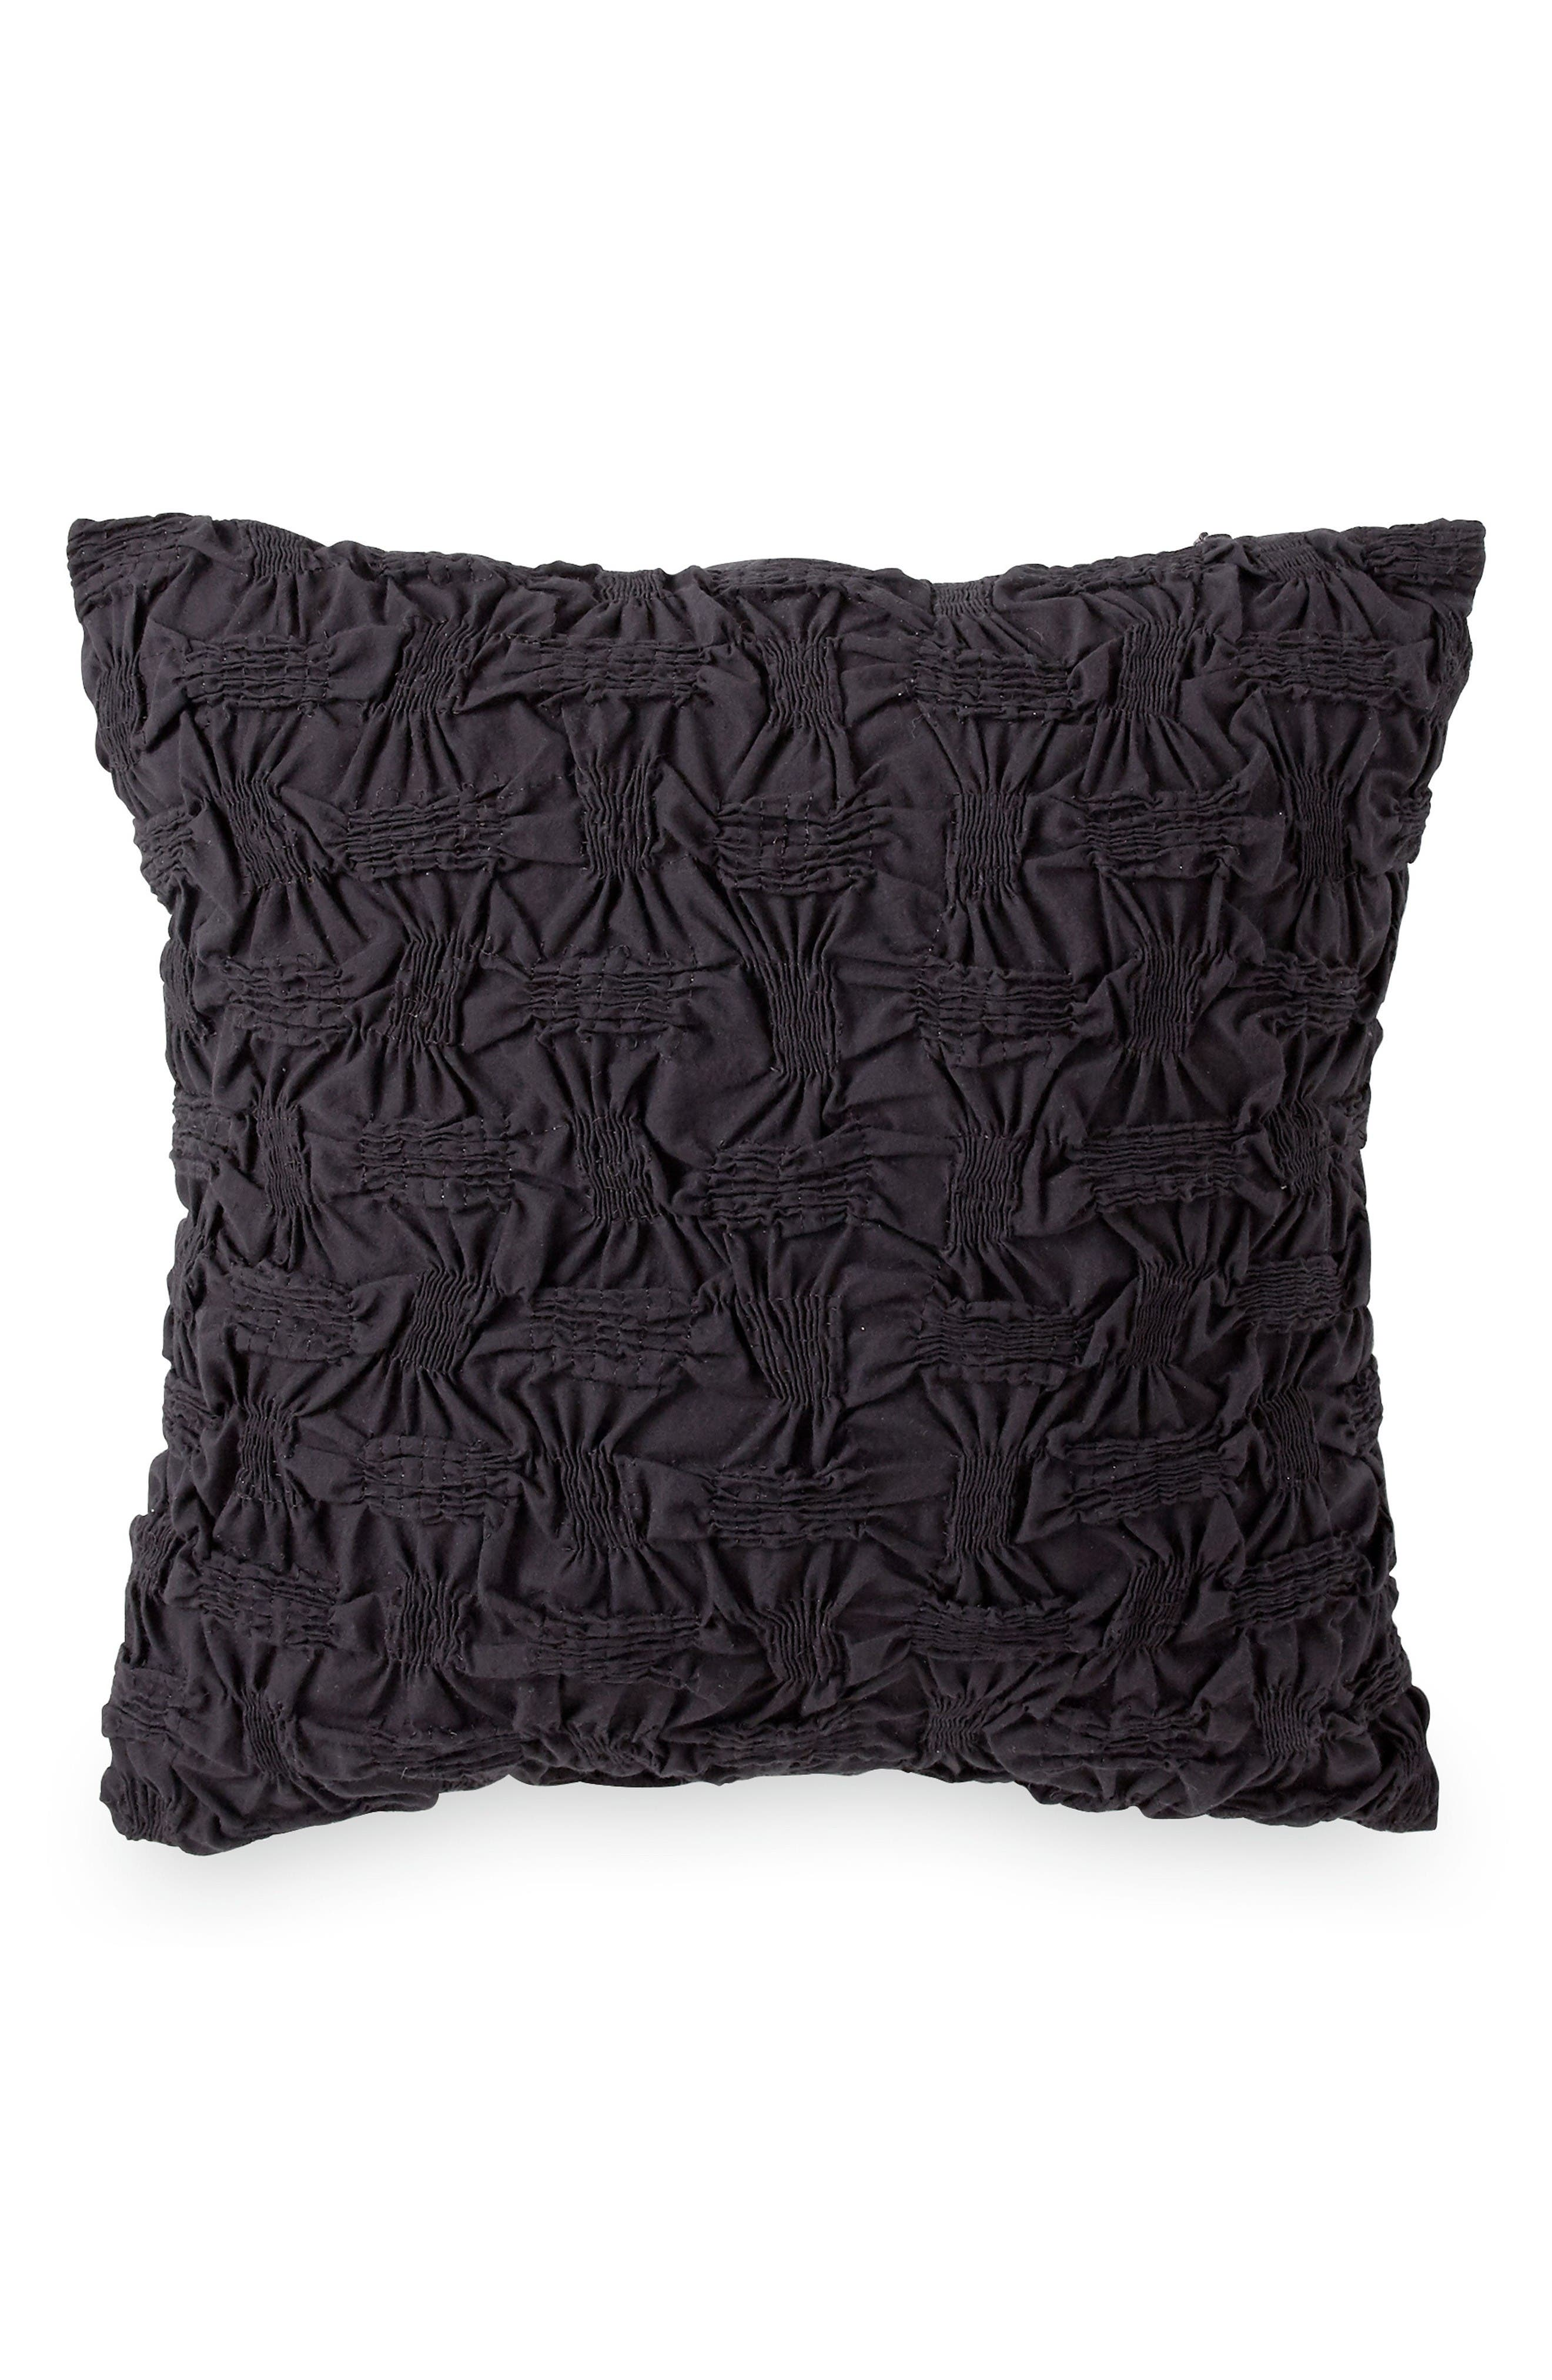 DKNY Ruched Accent Pillow